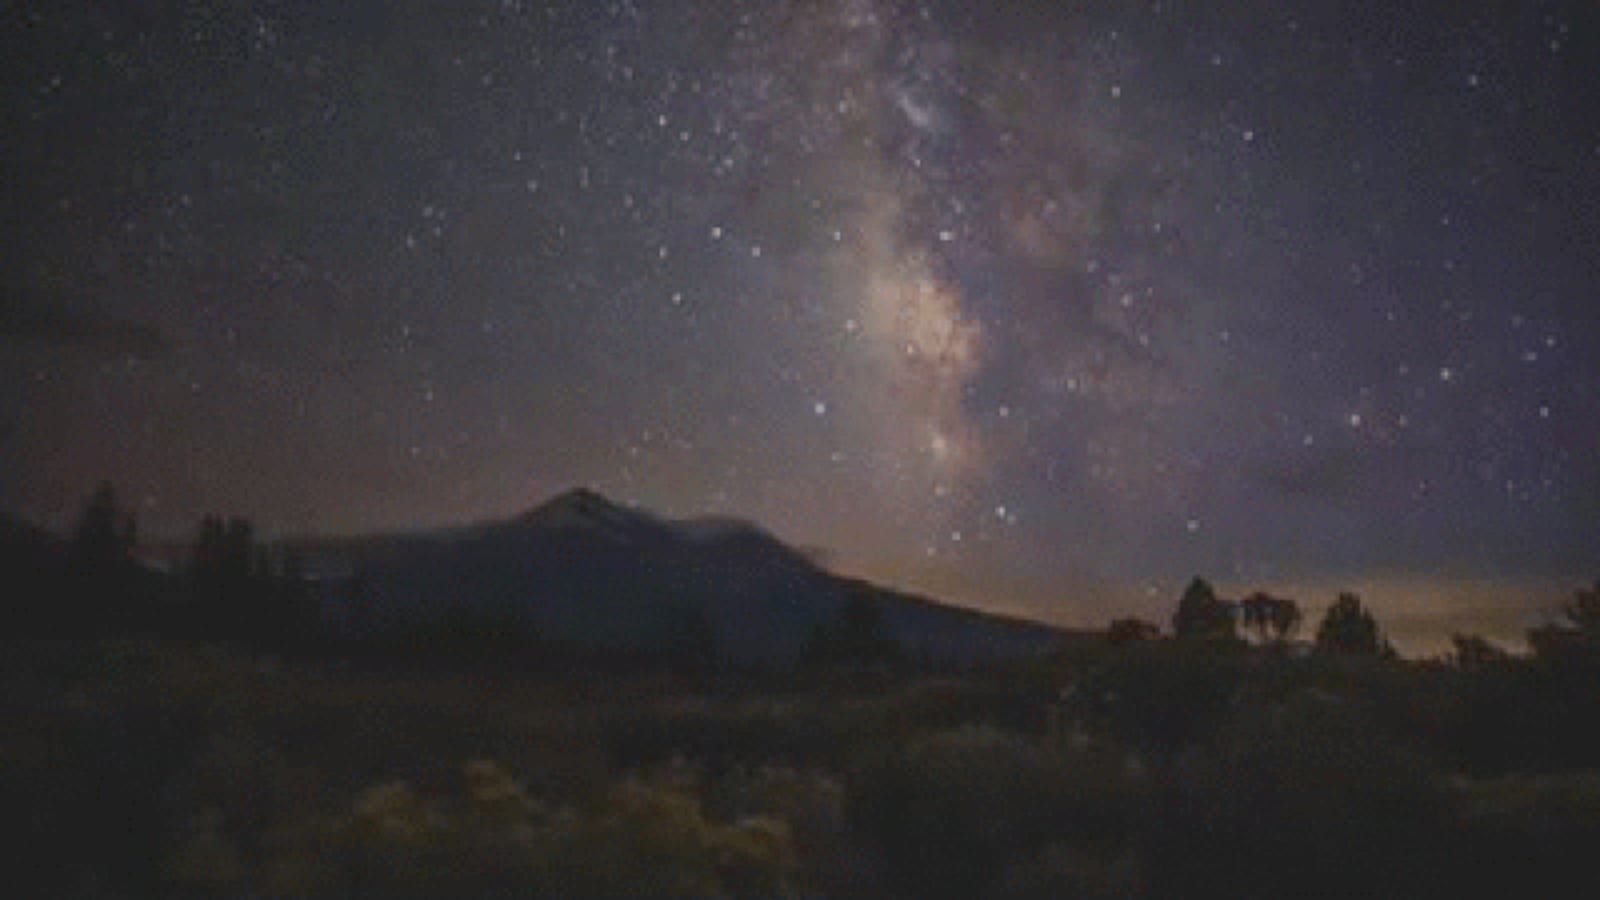 Learn How to Make Milky Way Time-Lapses in About 20 Minutes